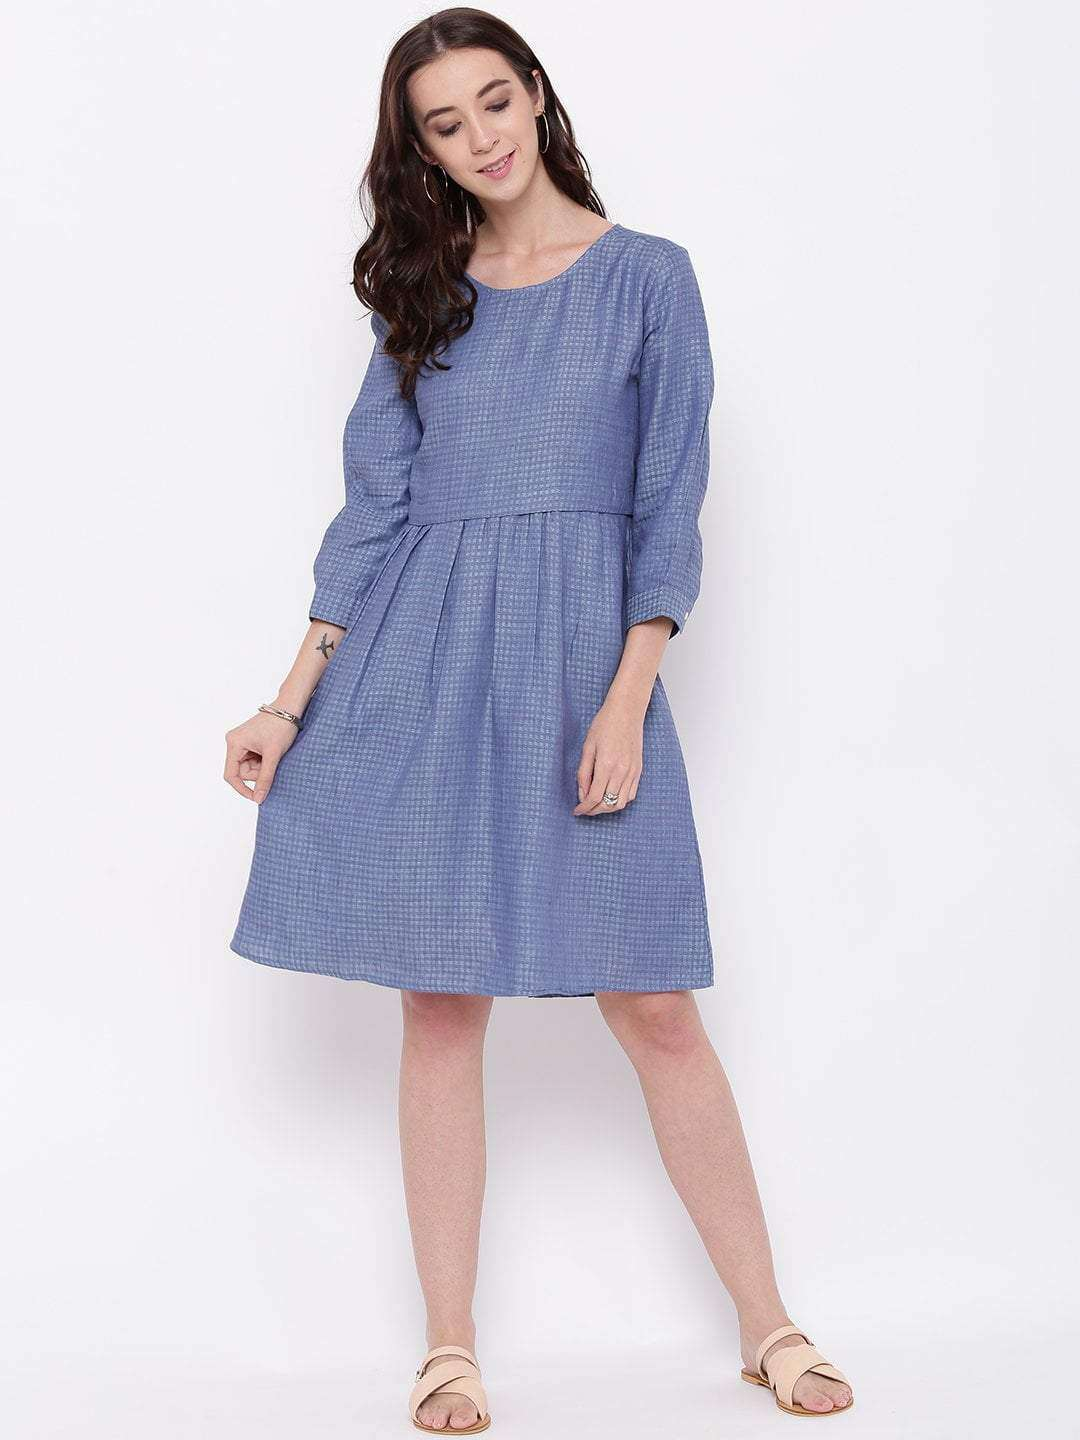 36c6f0b2eca5 Women s Linen Blue Regular Fit Dress